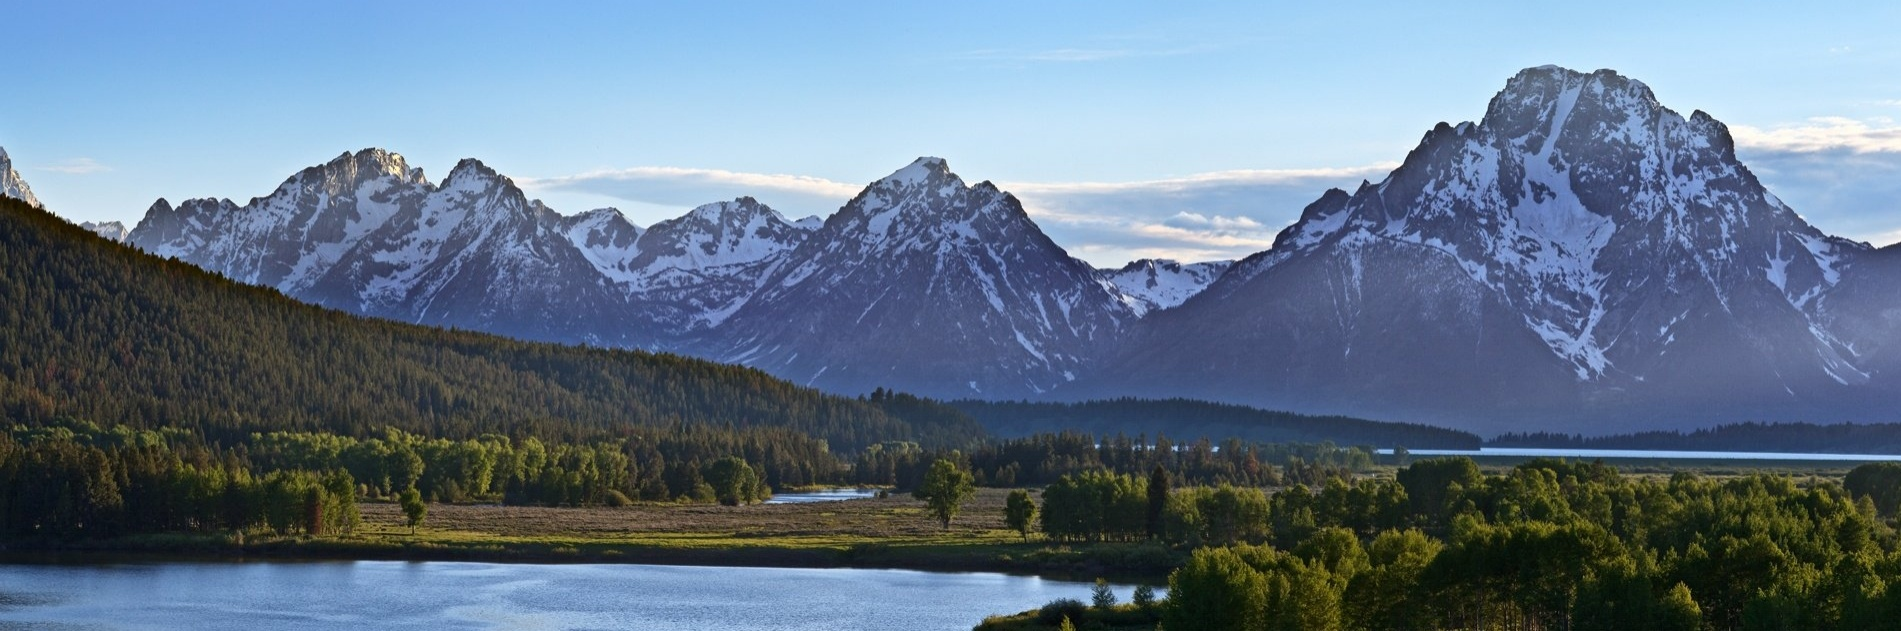 Oxbow Bend 3949L GSP Jackson Hole-693984-edited